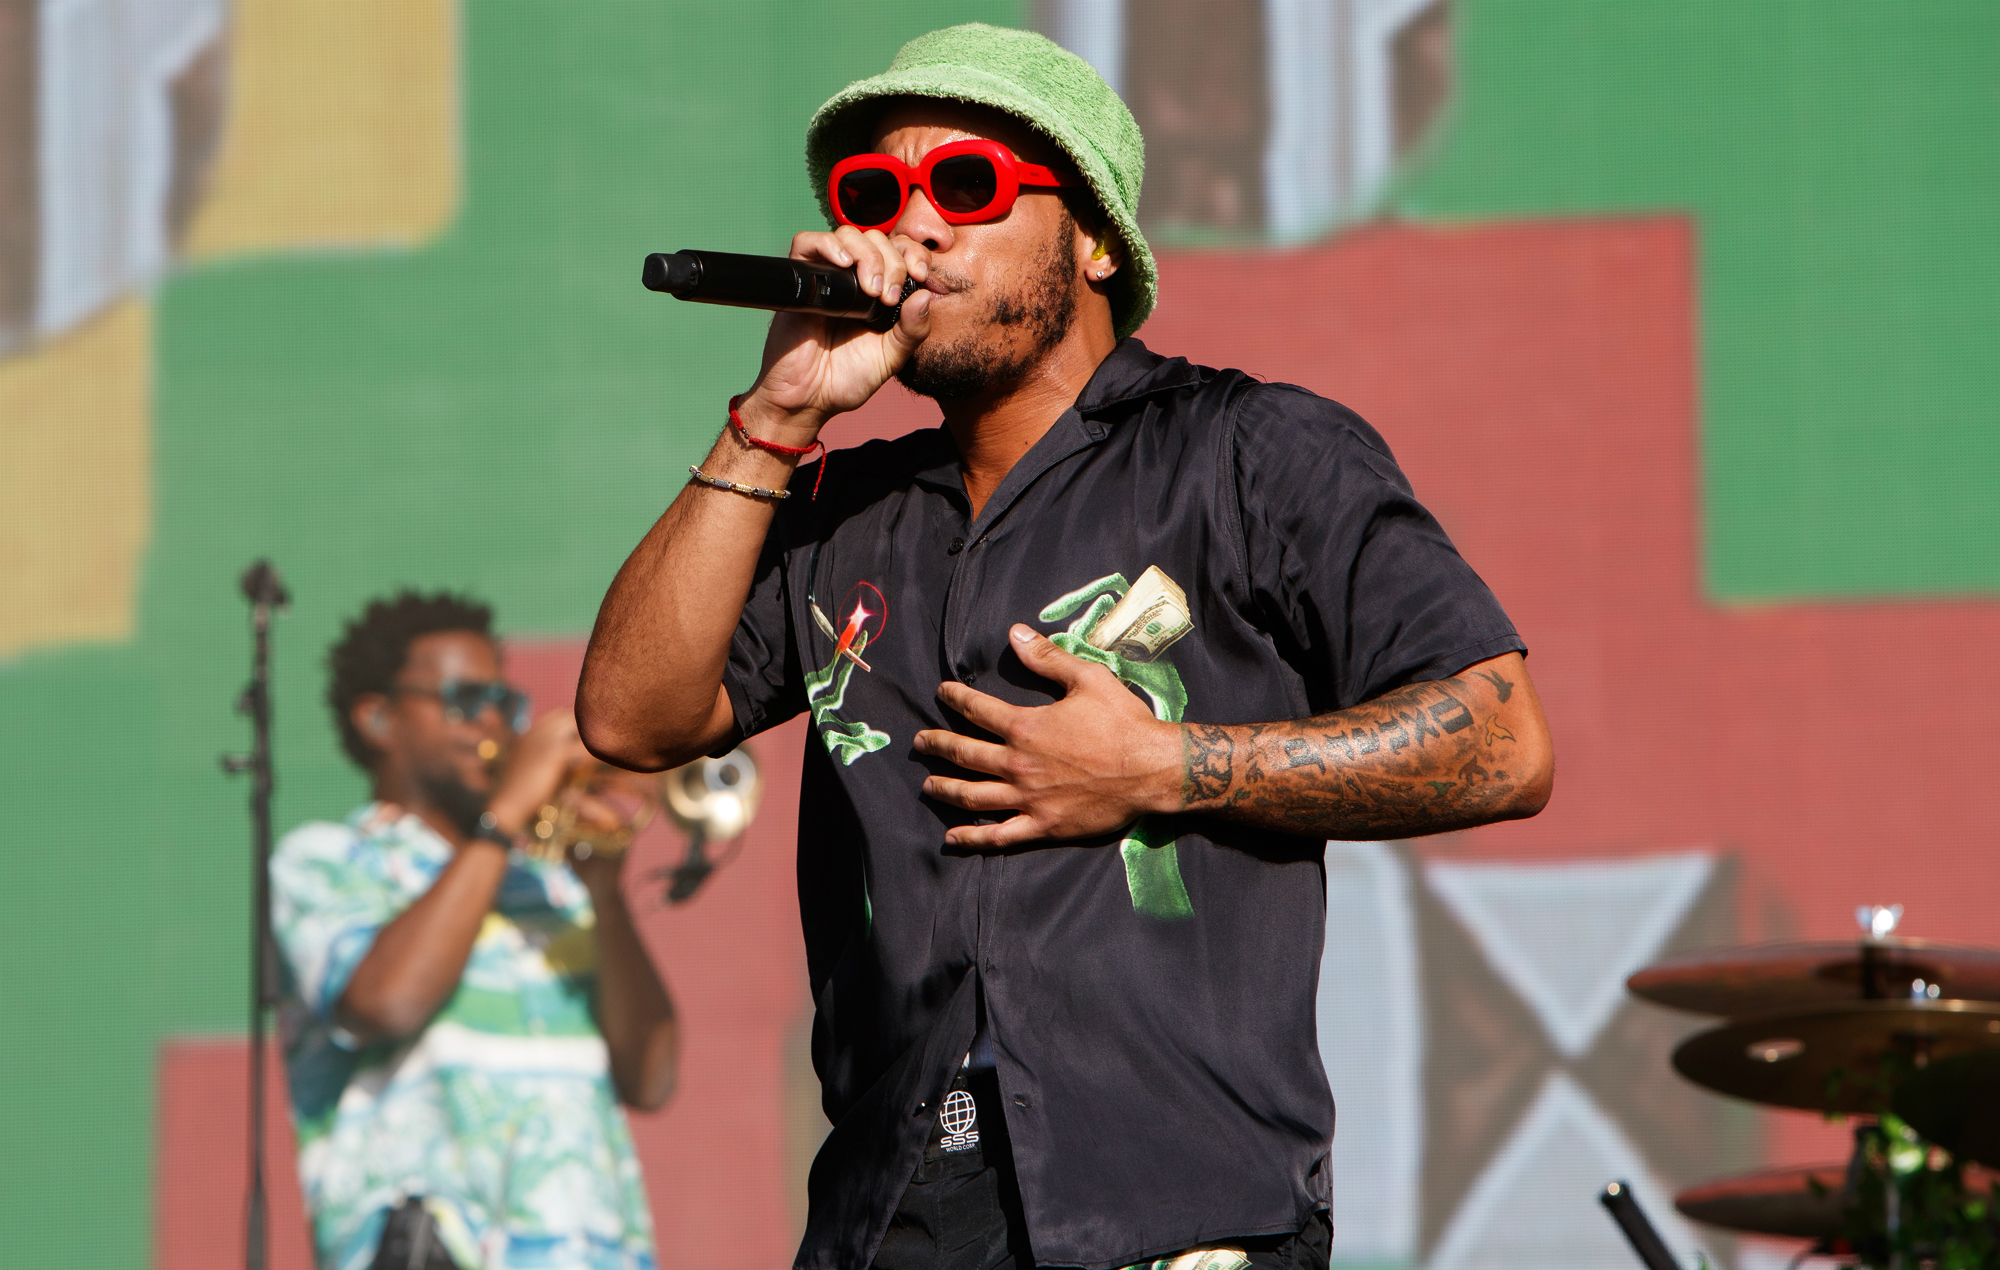 """Anderson .Paak reflects on being homeless: """"Music was my fighting chance"""""""